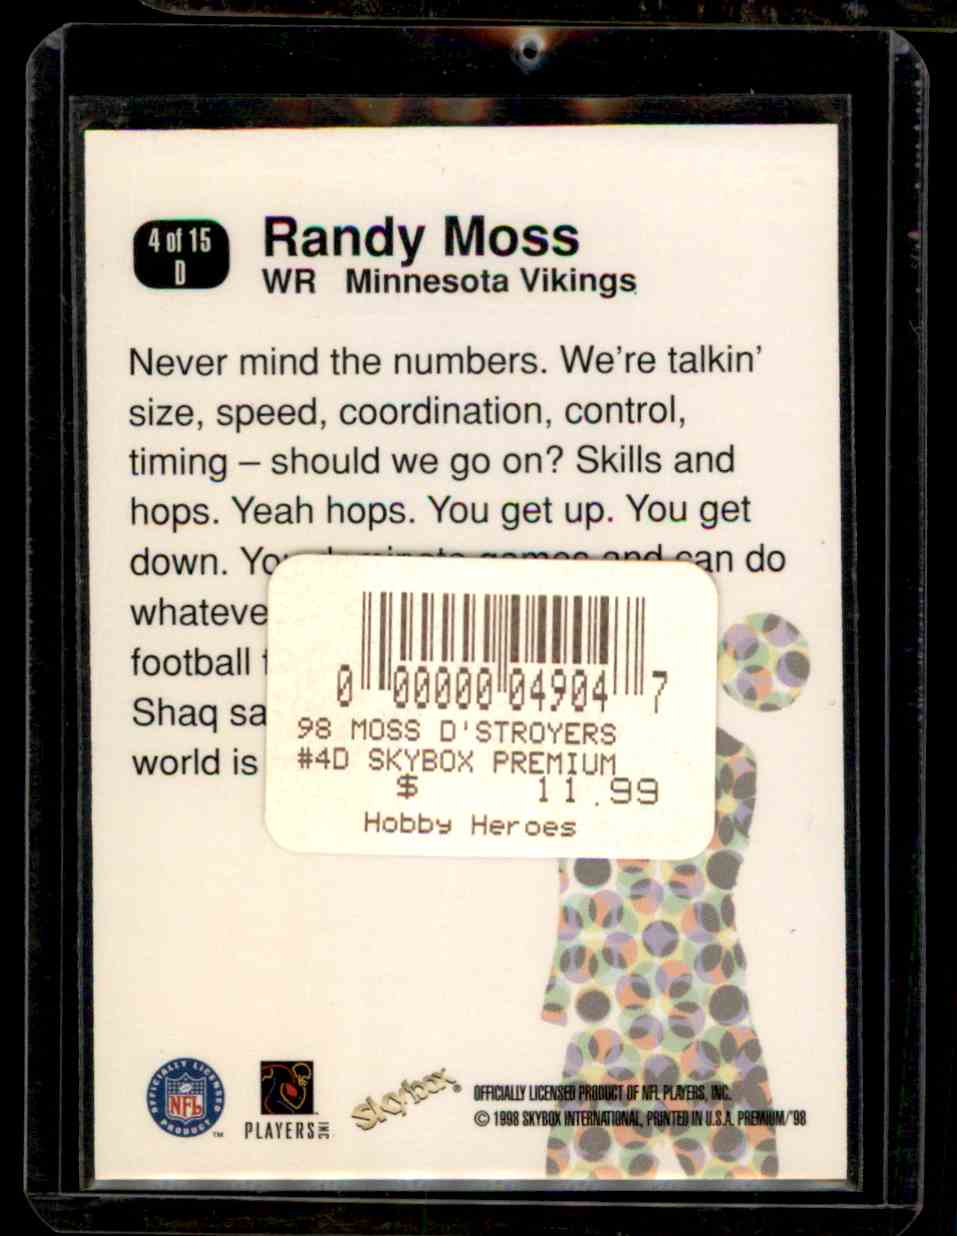 1998 Skybox Premium D'Stroyers Randy Moss #4D card back image